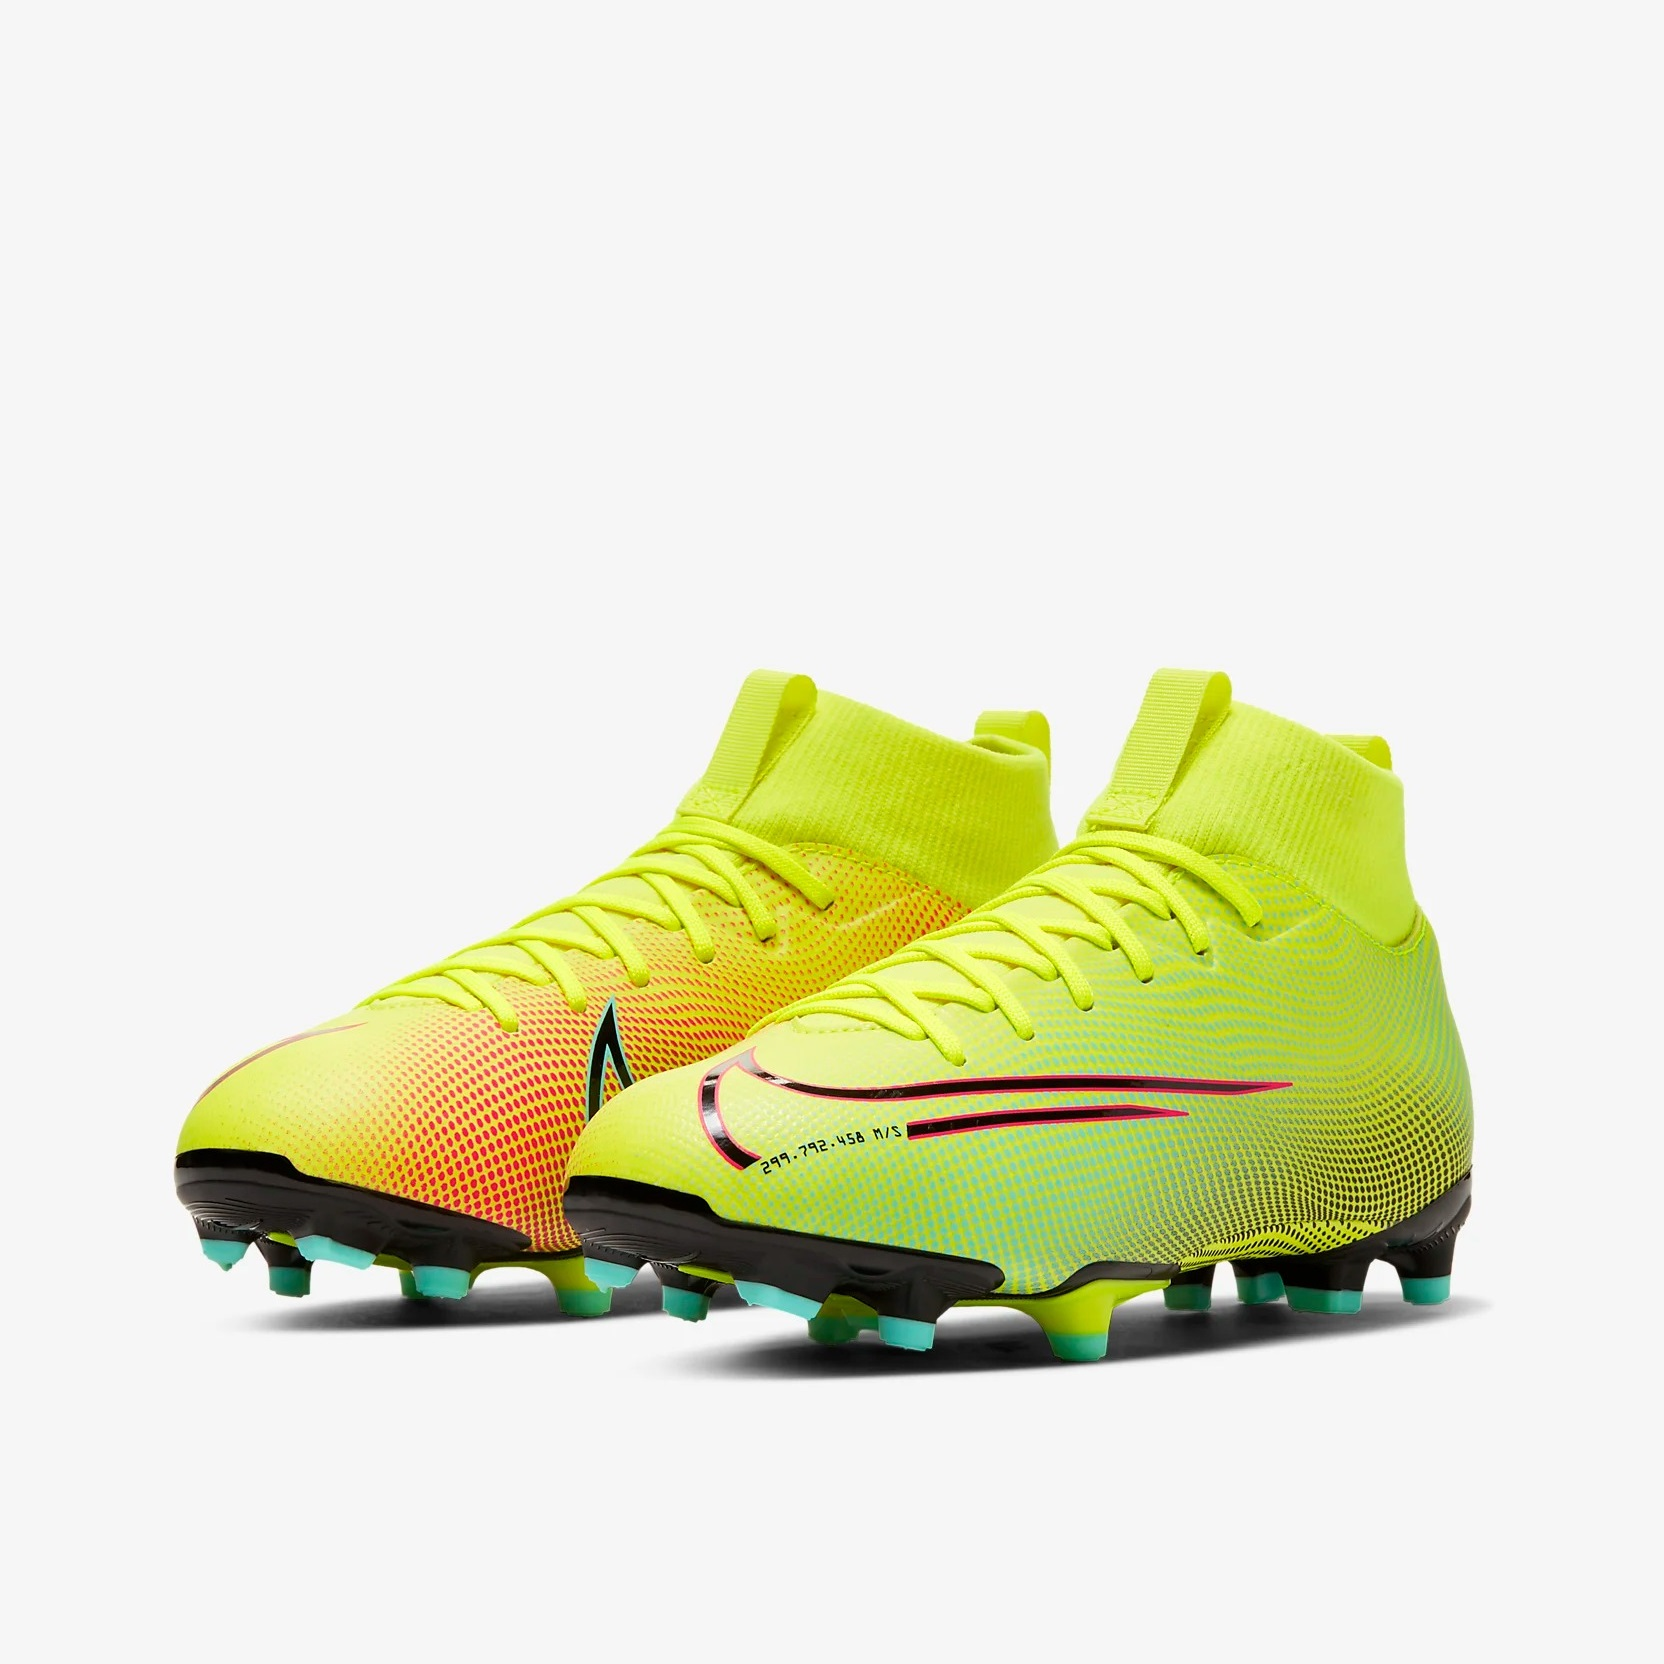 NIKE SUPERFLY 7 ACADEMY MDS FGMG BQ5409-703 JR